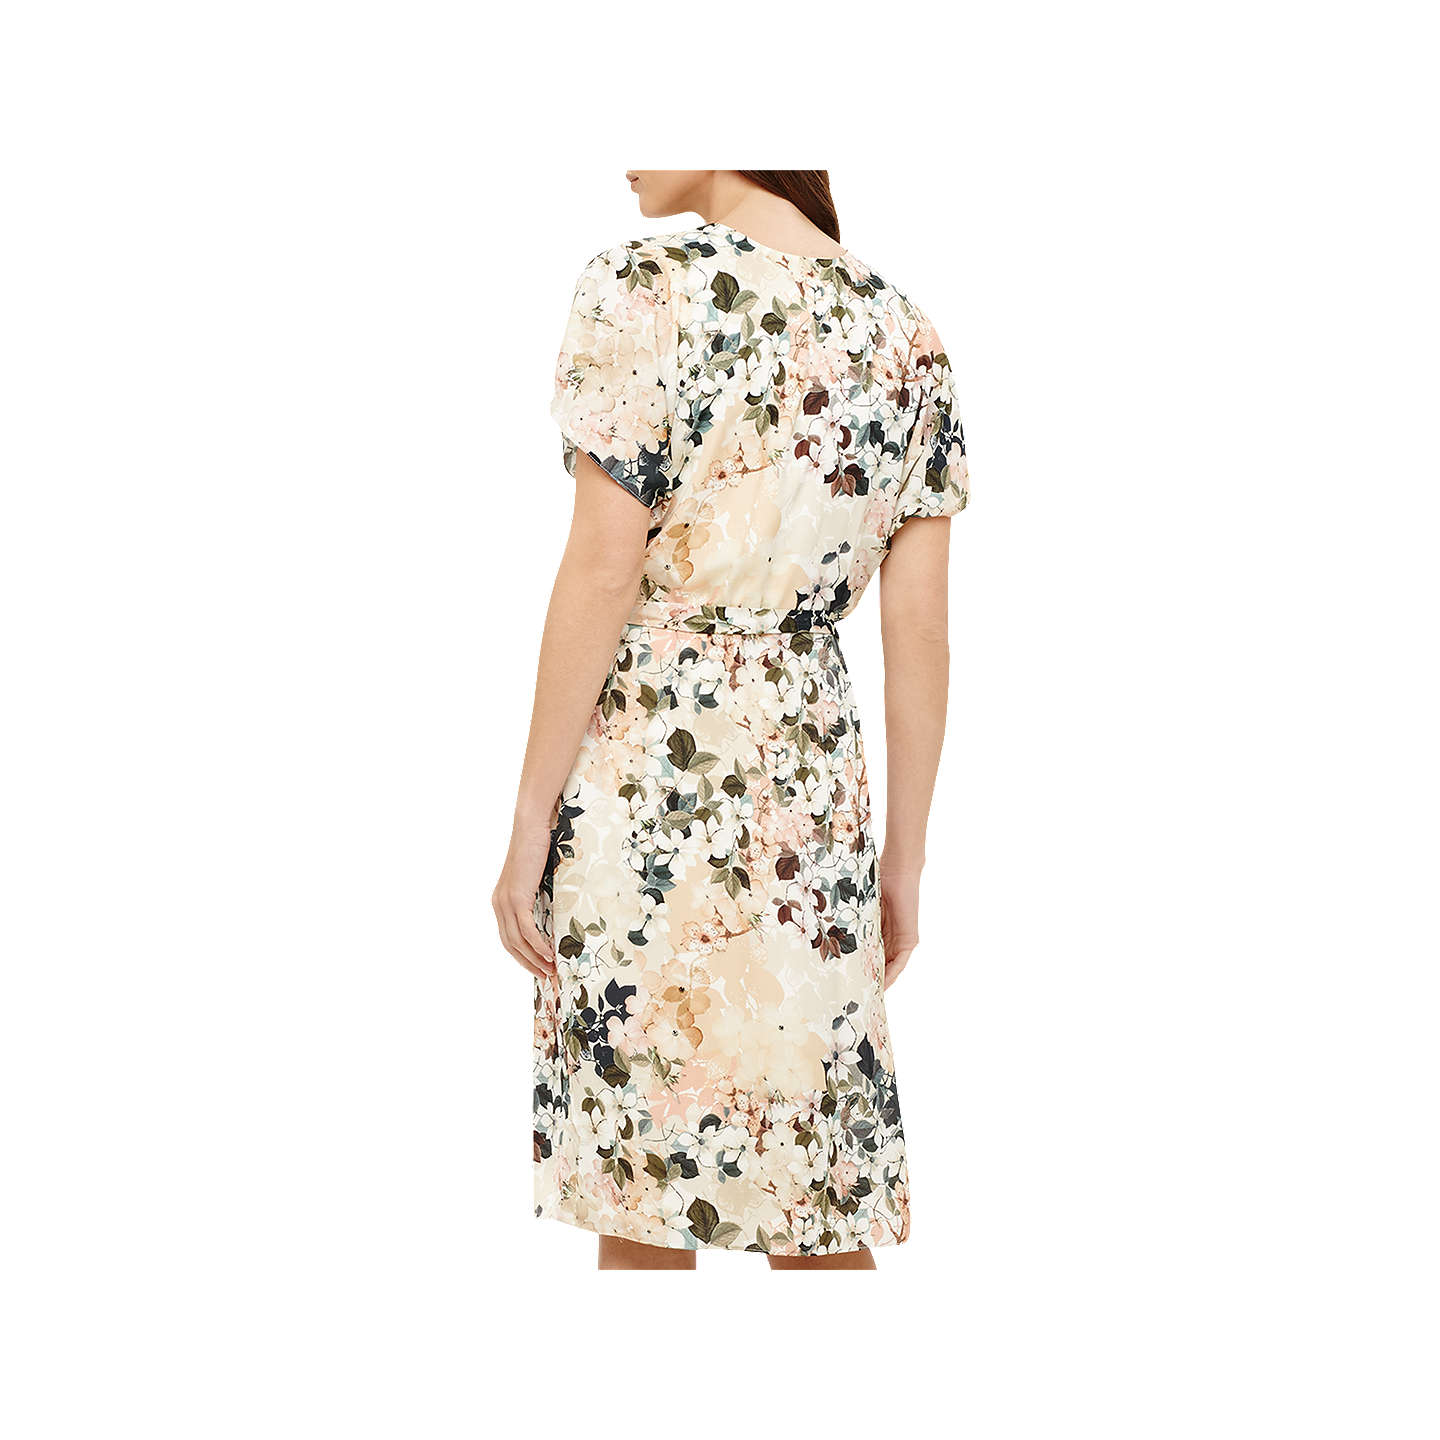 Choice Phase Eight Jen Floral Wrap Dress Top Quality Cheap Online Amazon Sale Online APt3bbSB